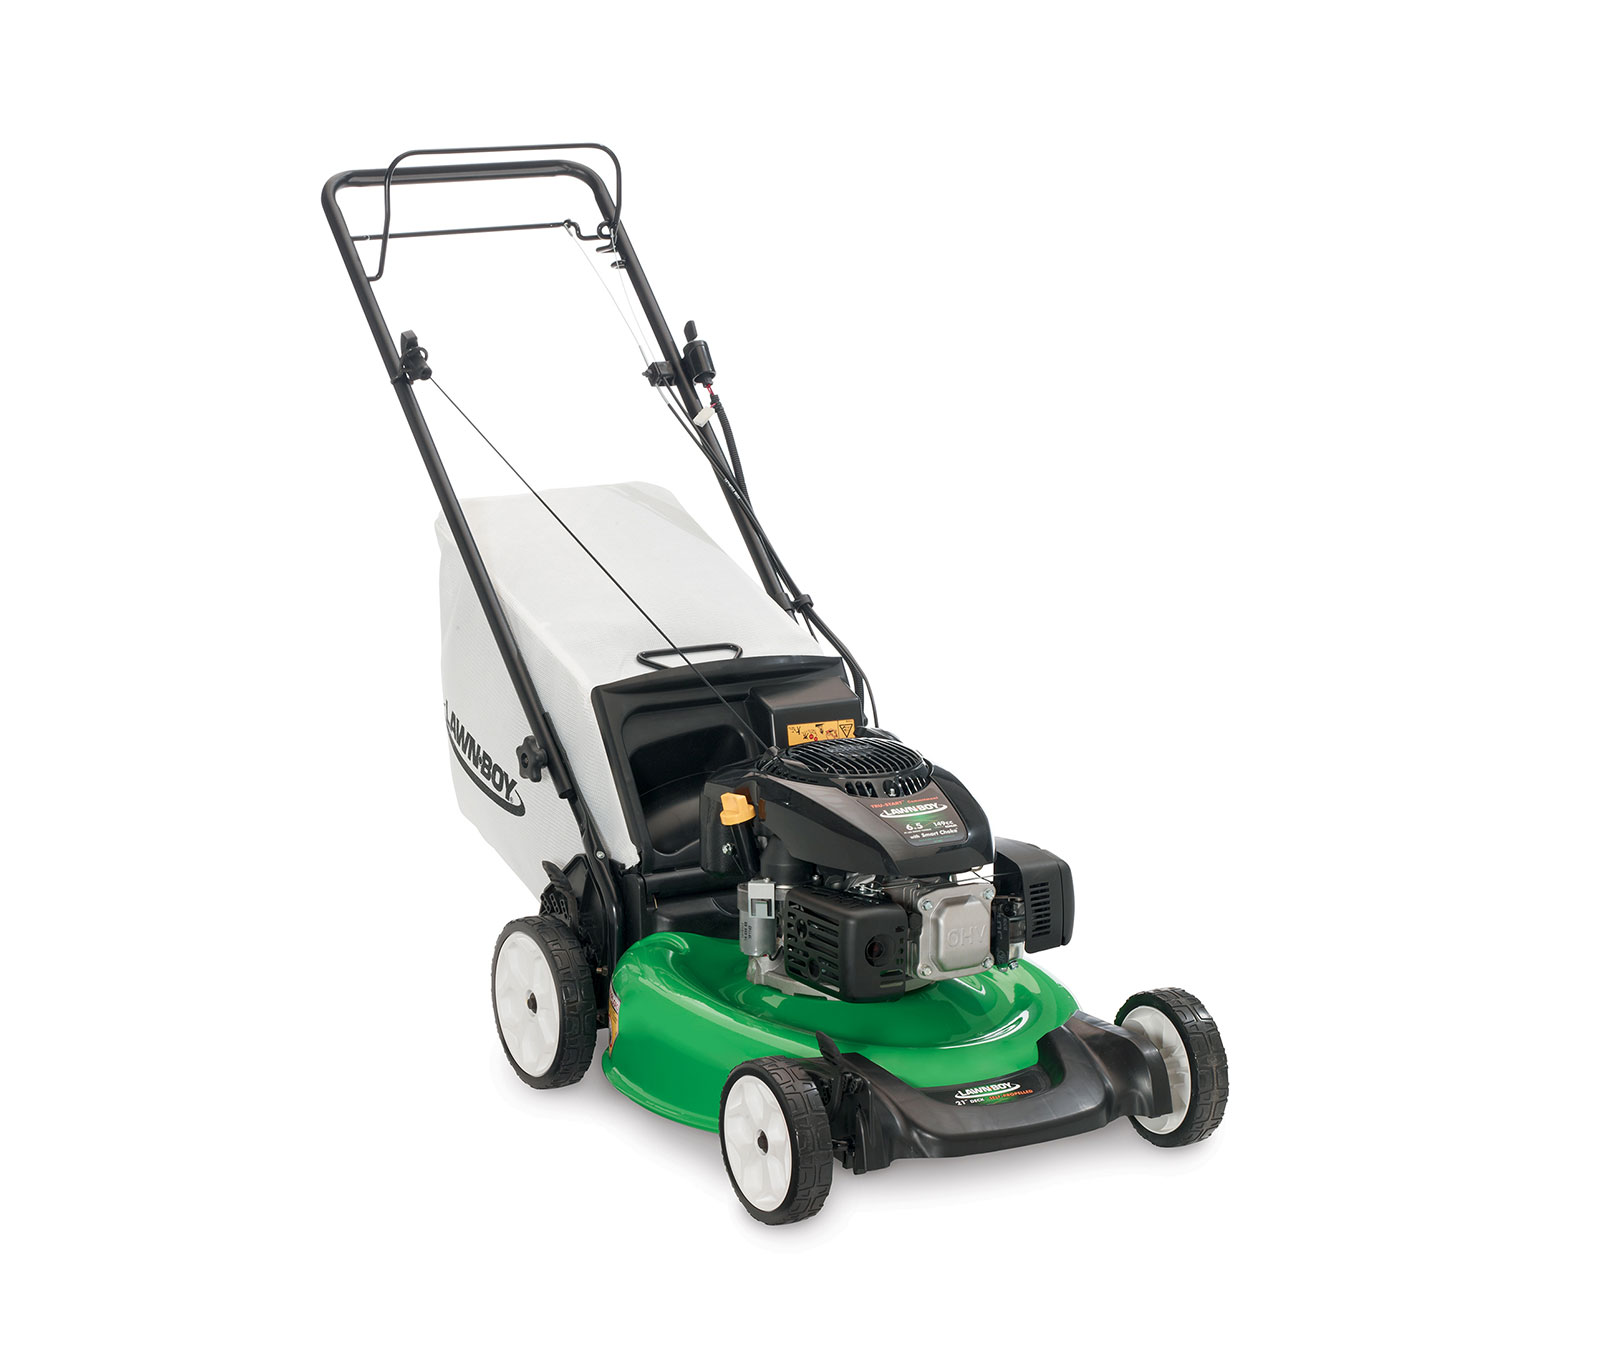 Electric Lawn Mower Sale Lawnboy Lawn Boy Landscaping Equipment Lawn Mowers Blowervacs